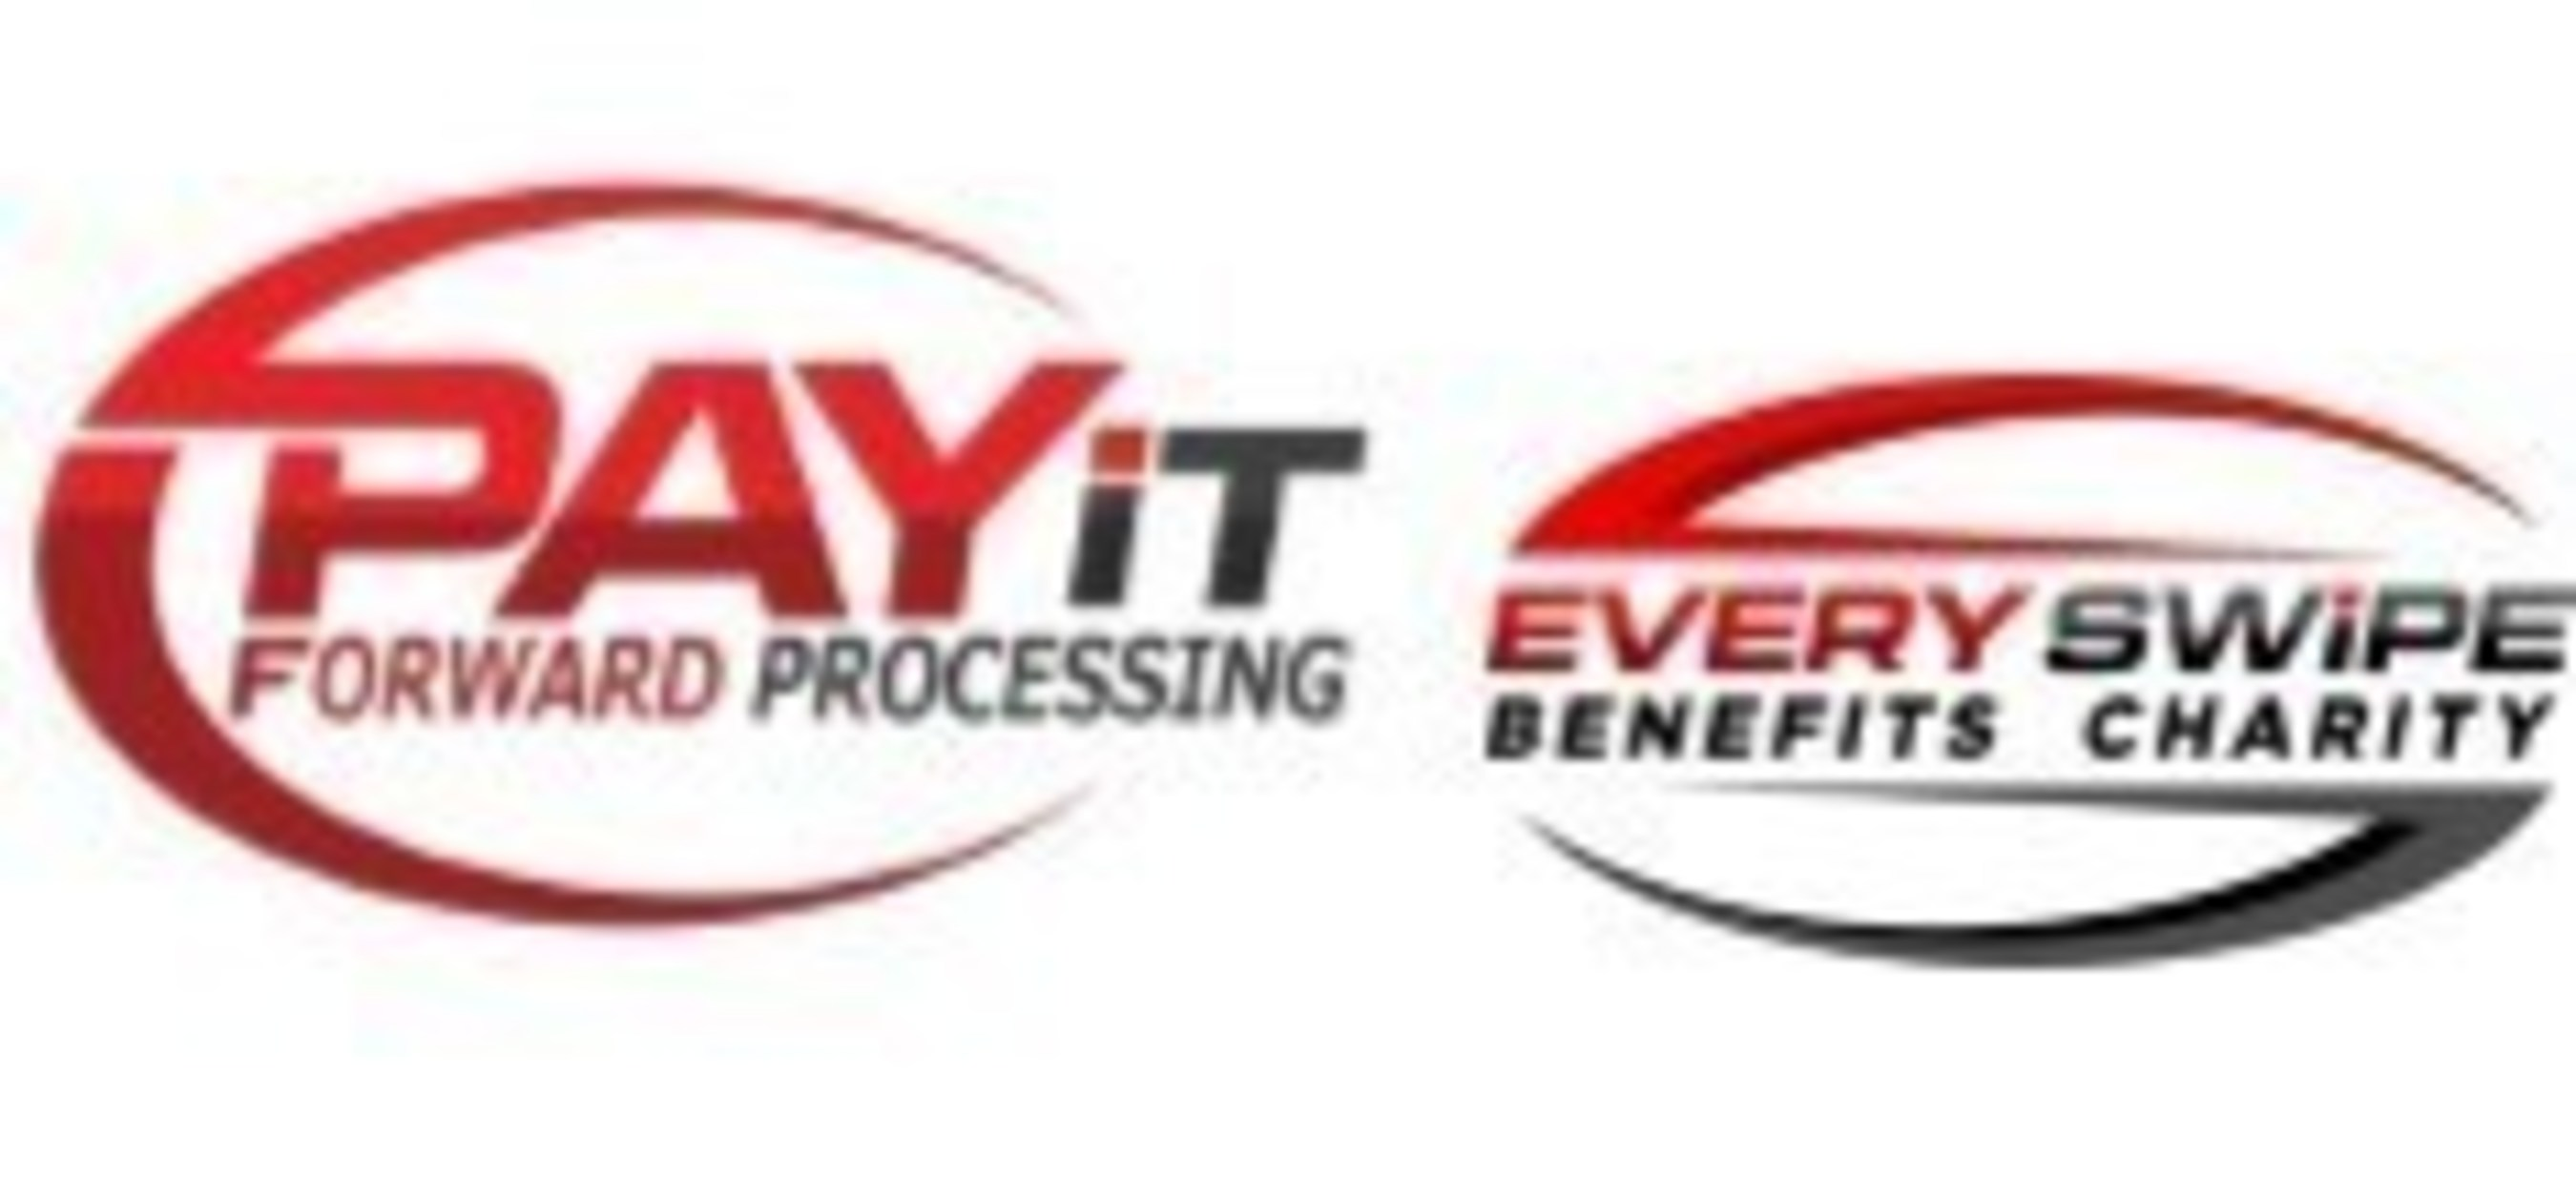 Pay it forwards every swipe benefits charity gives 100000 to an opportunity to benefit their business customers and community through pay it forward processing pfprocessing a national credit card processing colourmoves